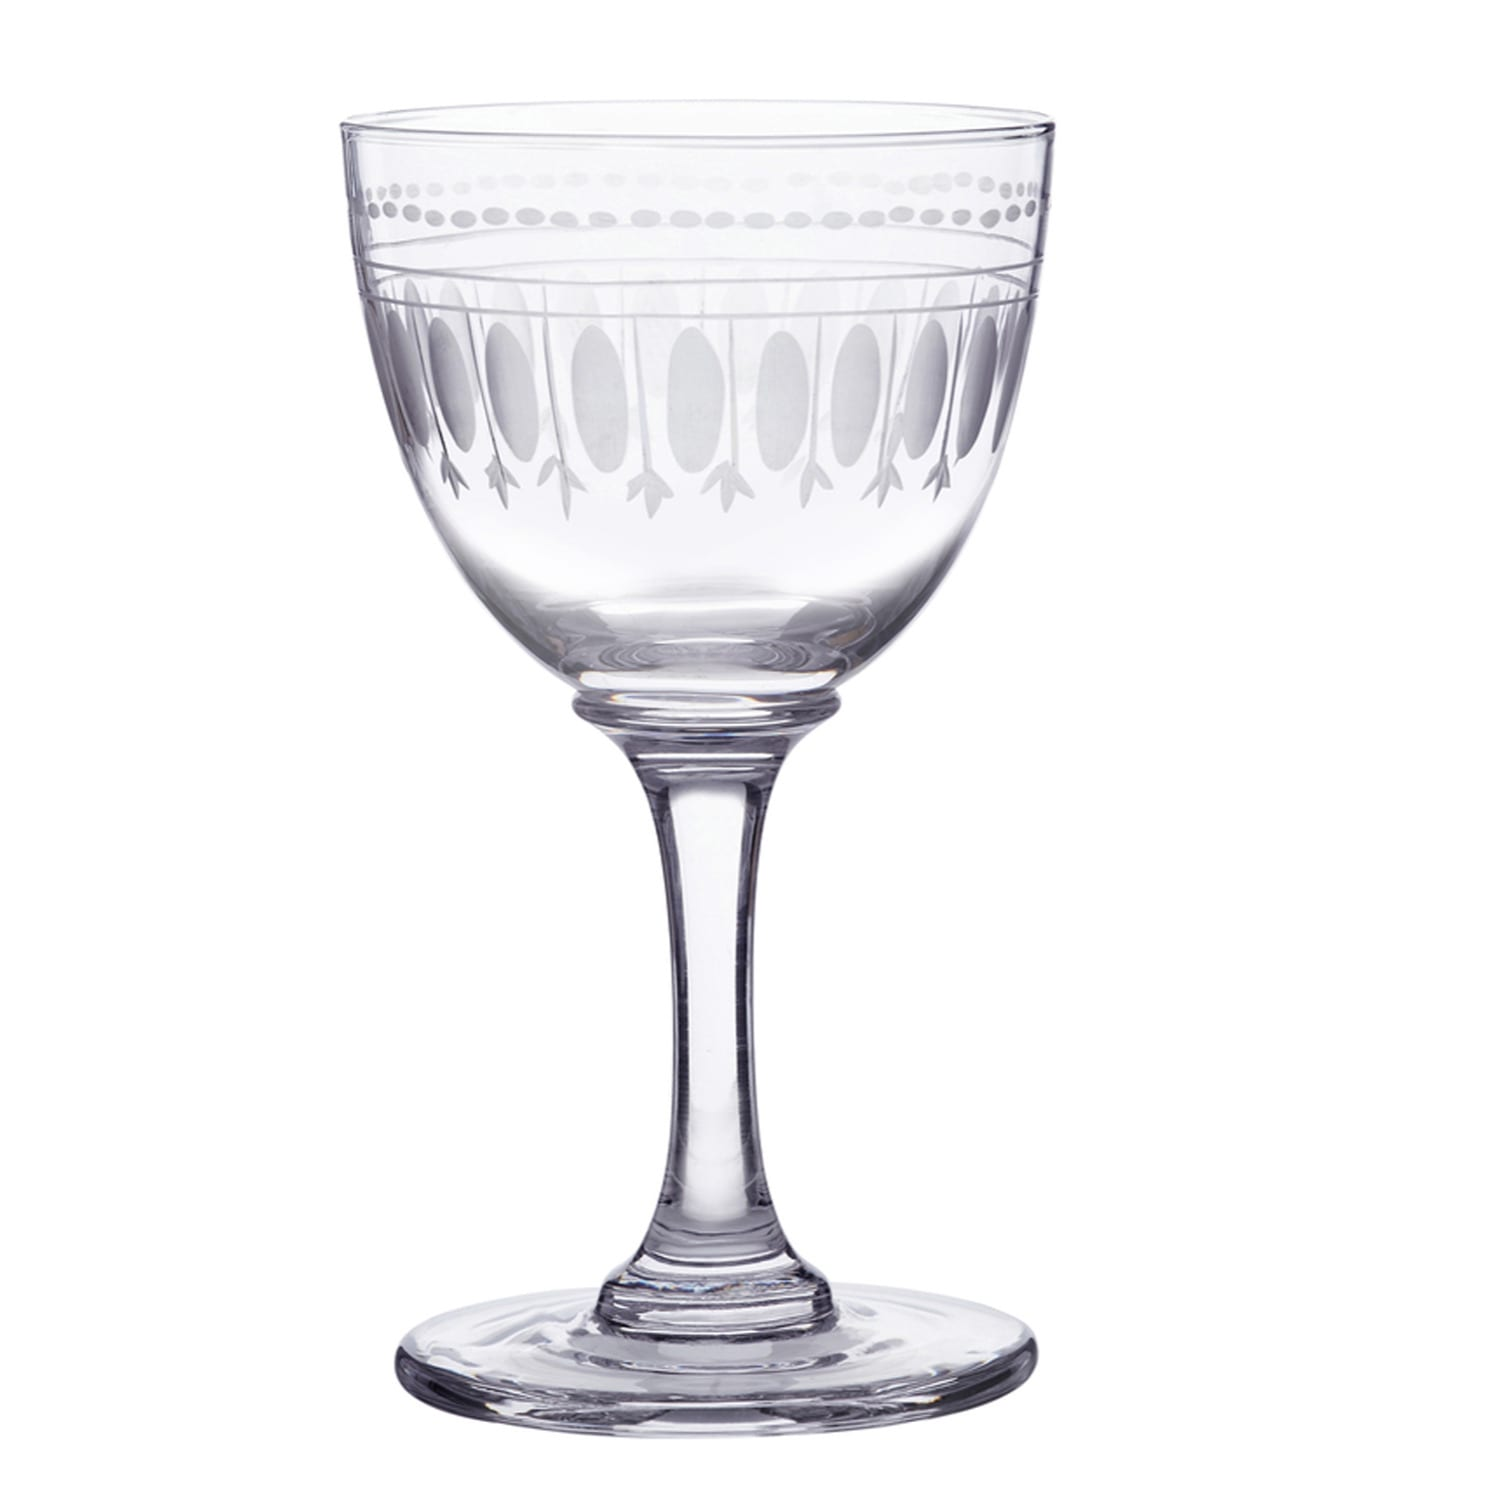 The Vintage List - Six Hand-Engraved Crystal Liqueur Glasses with Ovals Design